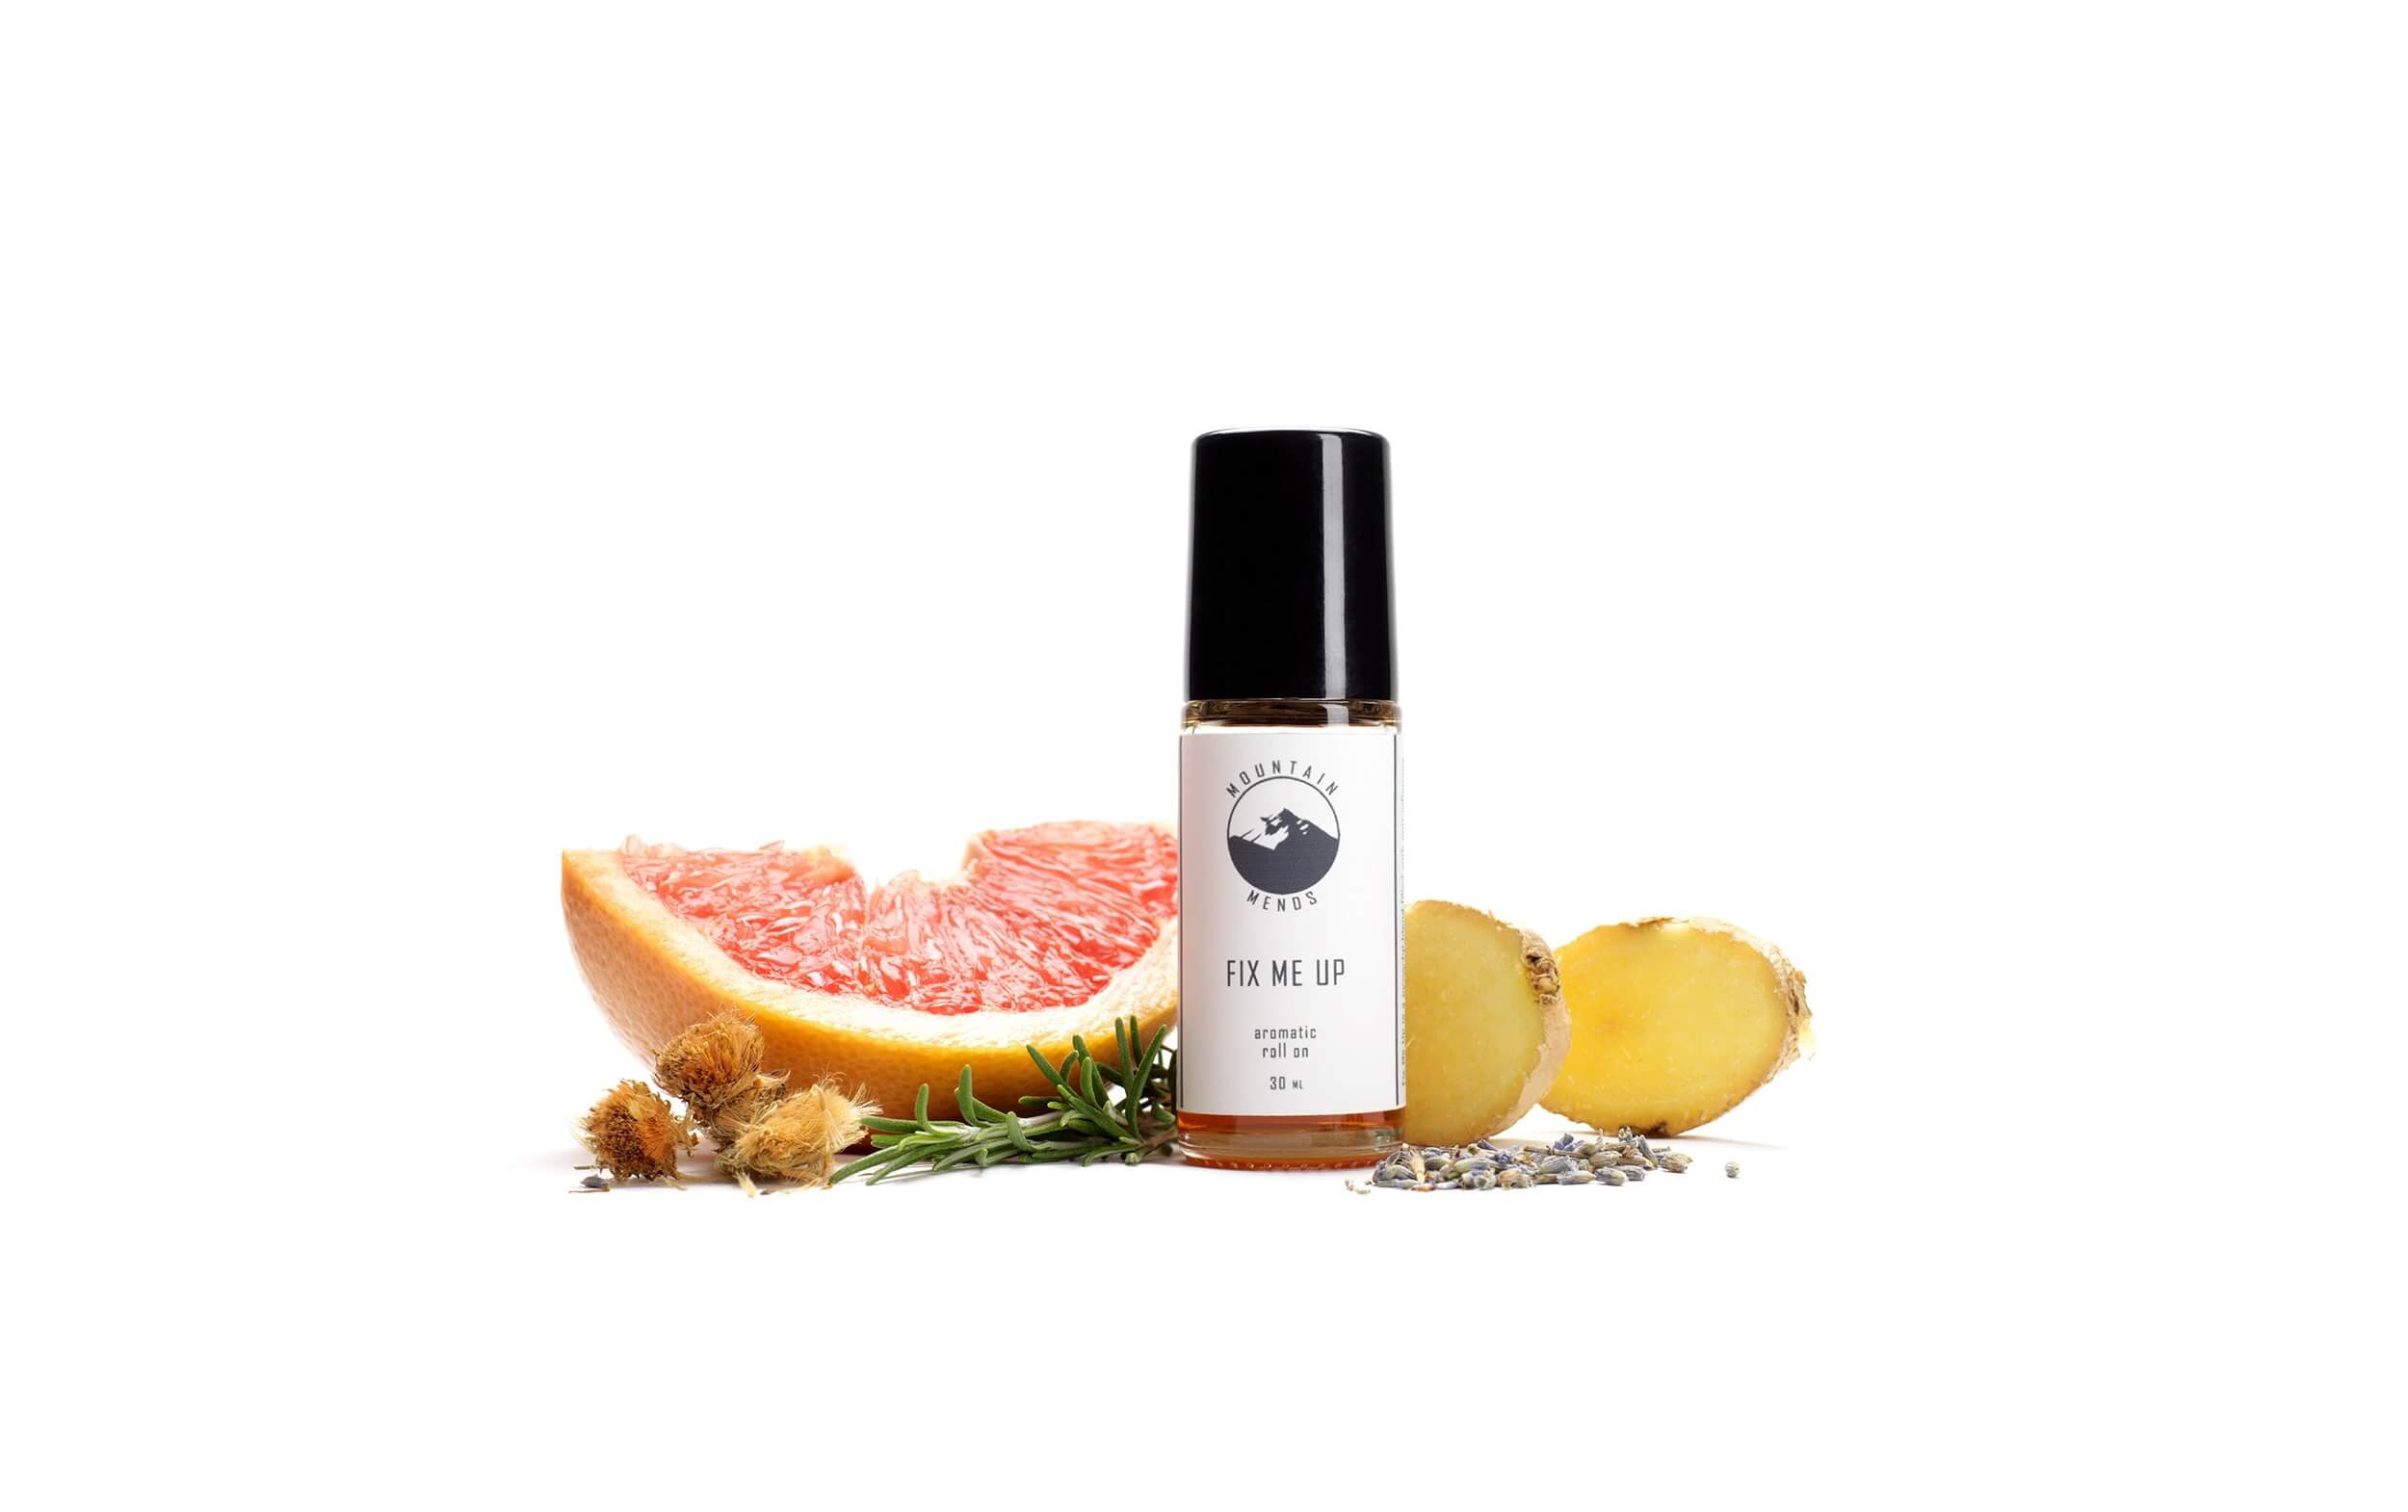 essential oil bottle with mountain mends logo surrounded by a blood orange and ginger and rosemary